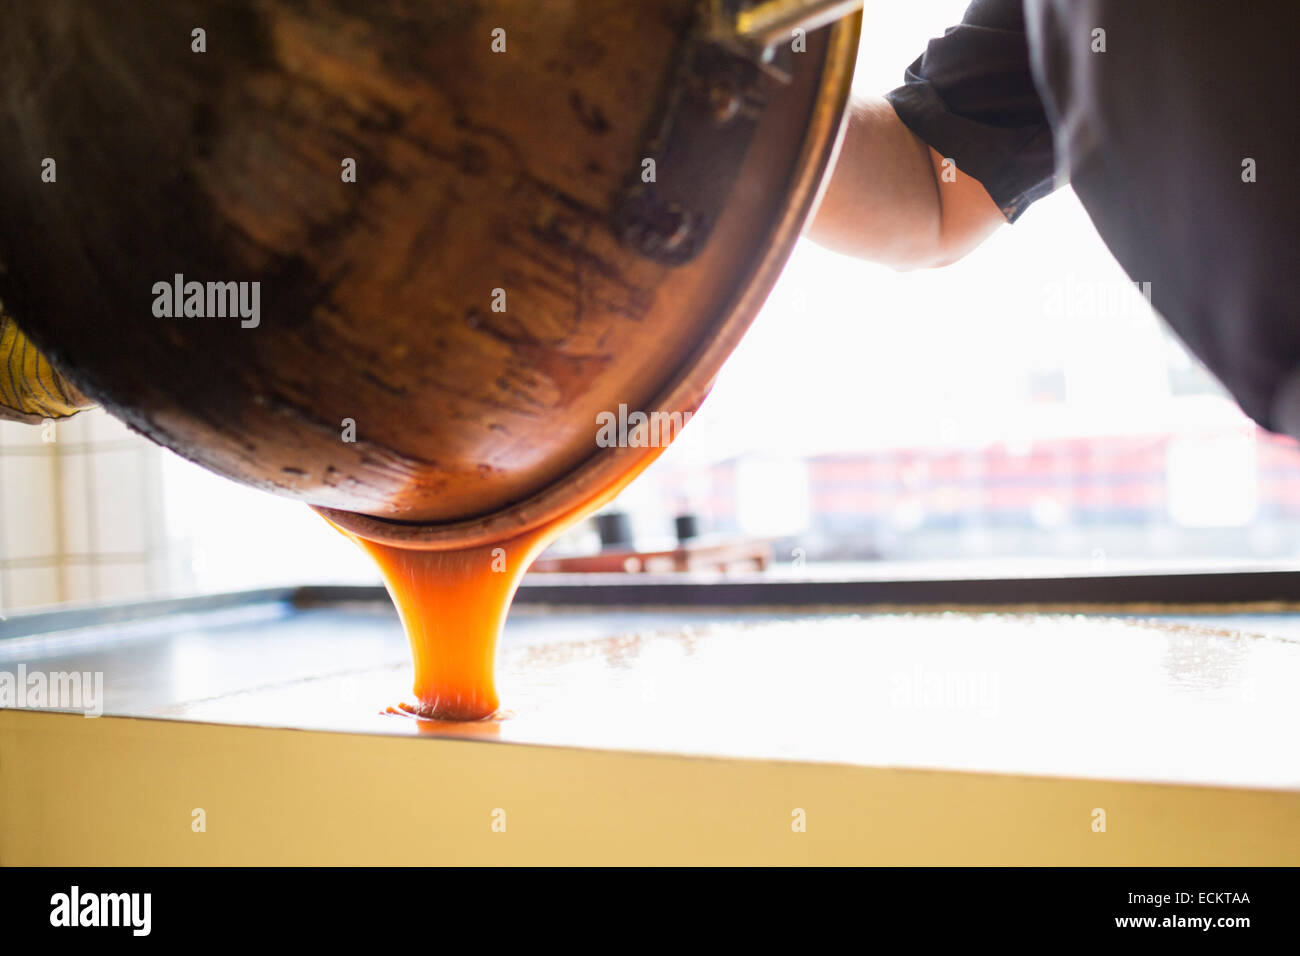 Cropped image of worker pouring caramel in container at candy store - Stock Image